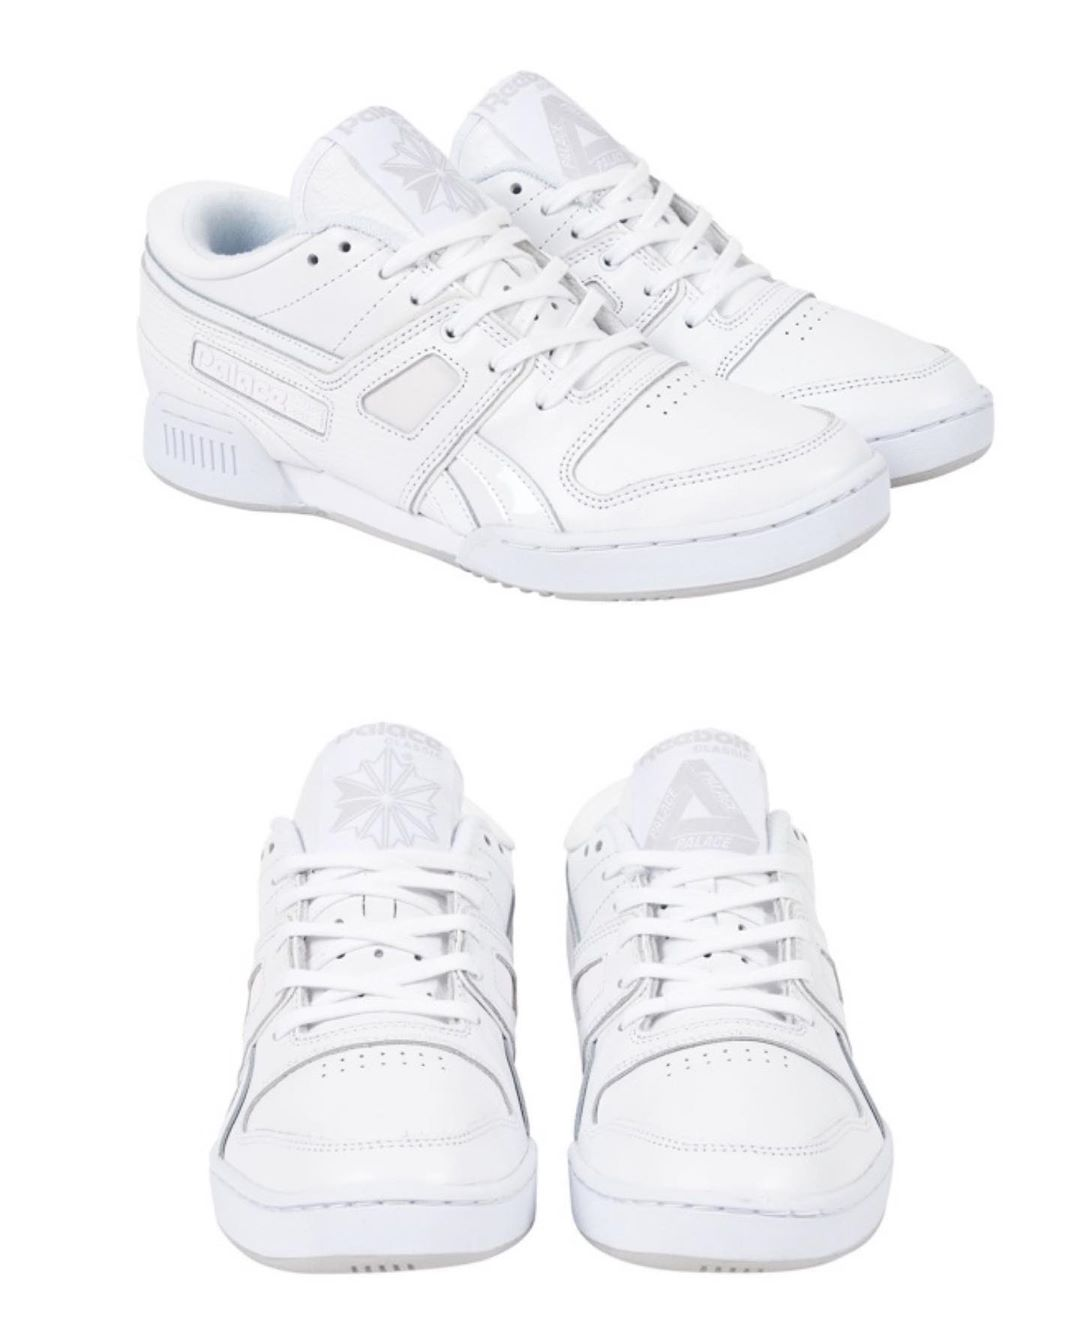 palace-reebok-classic-workout-low-release-20190817